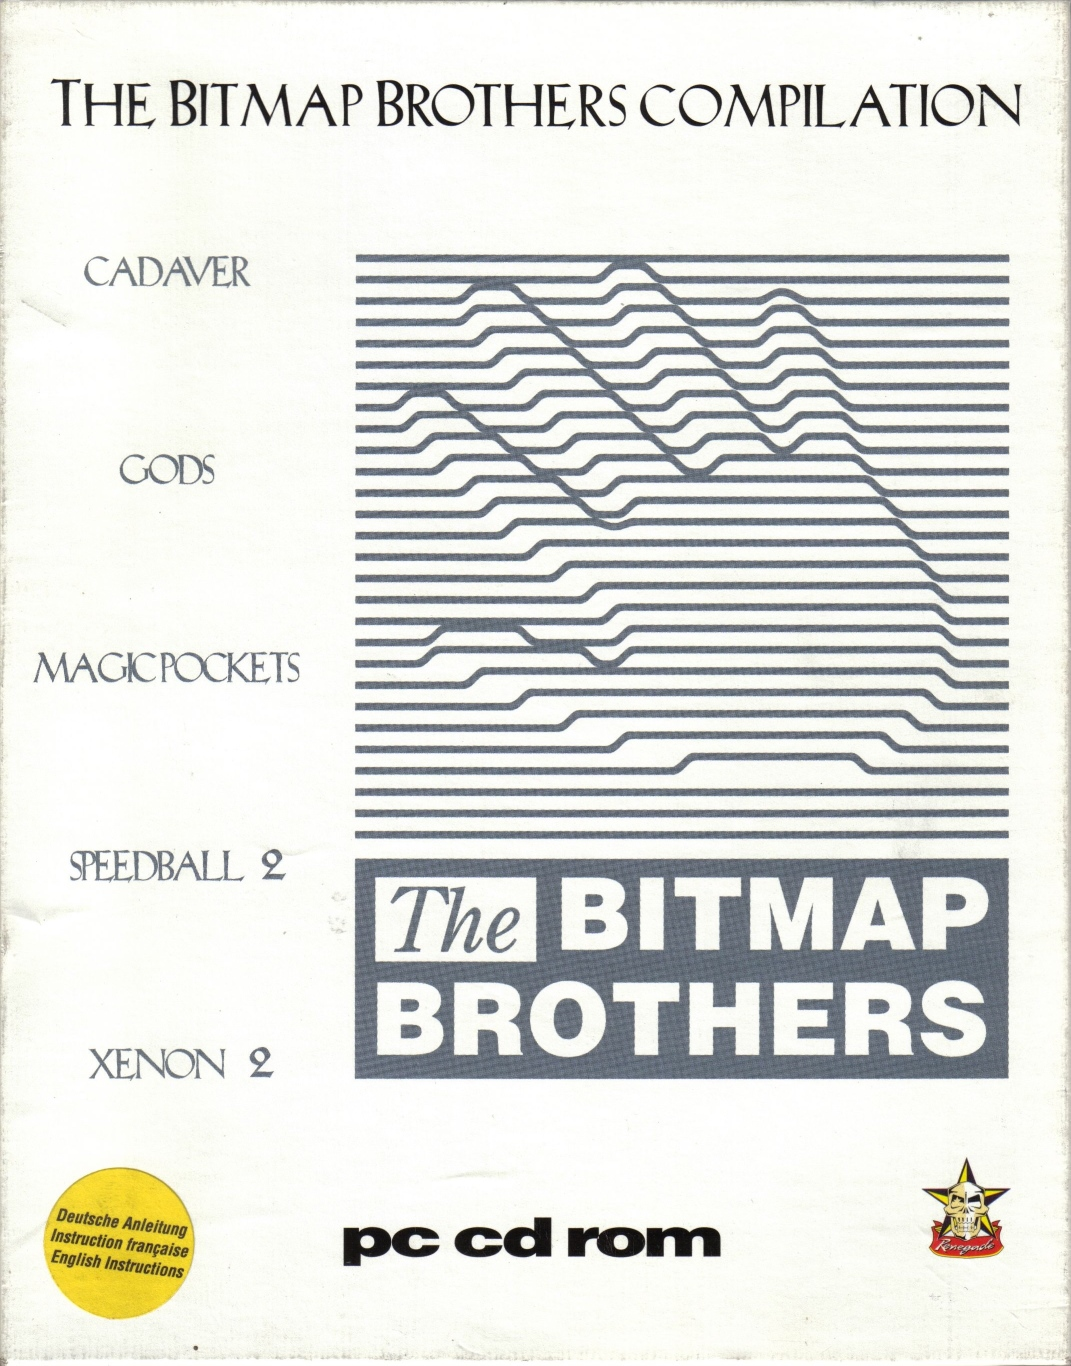 image : The Bitmap Brothers Compilation